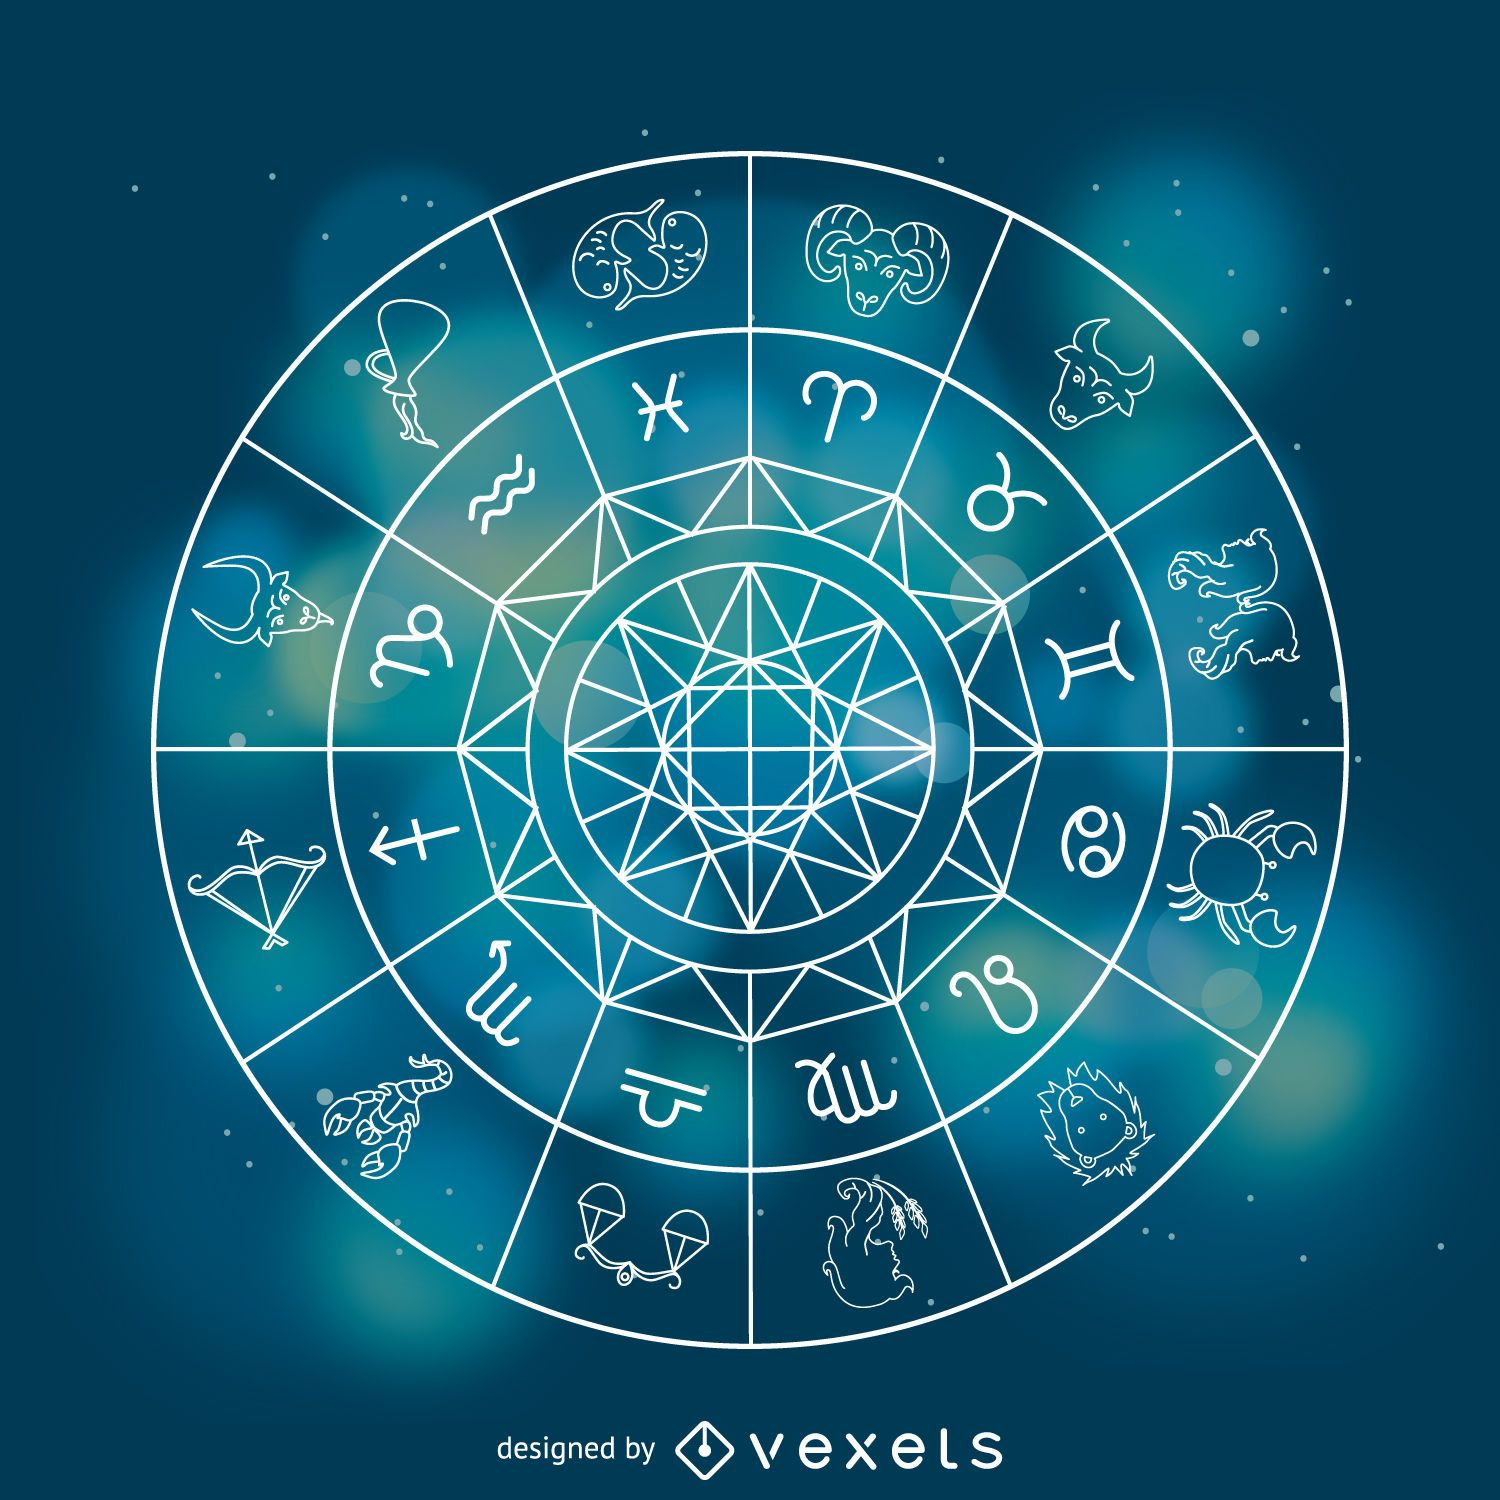 Horoscope Zodiac Signs Illustration  Vector Download. Copyright Free Signs. Sale Sign Signs Of Stroke. Sarcasm Signs. 25 December Signs Of Stroke. Different Car Signs. Faux Wood Signs Of Stroke. Used Marketing Signs. Star Princess Signs